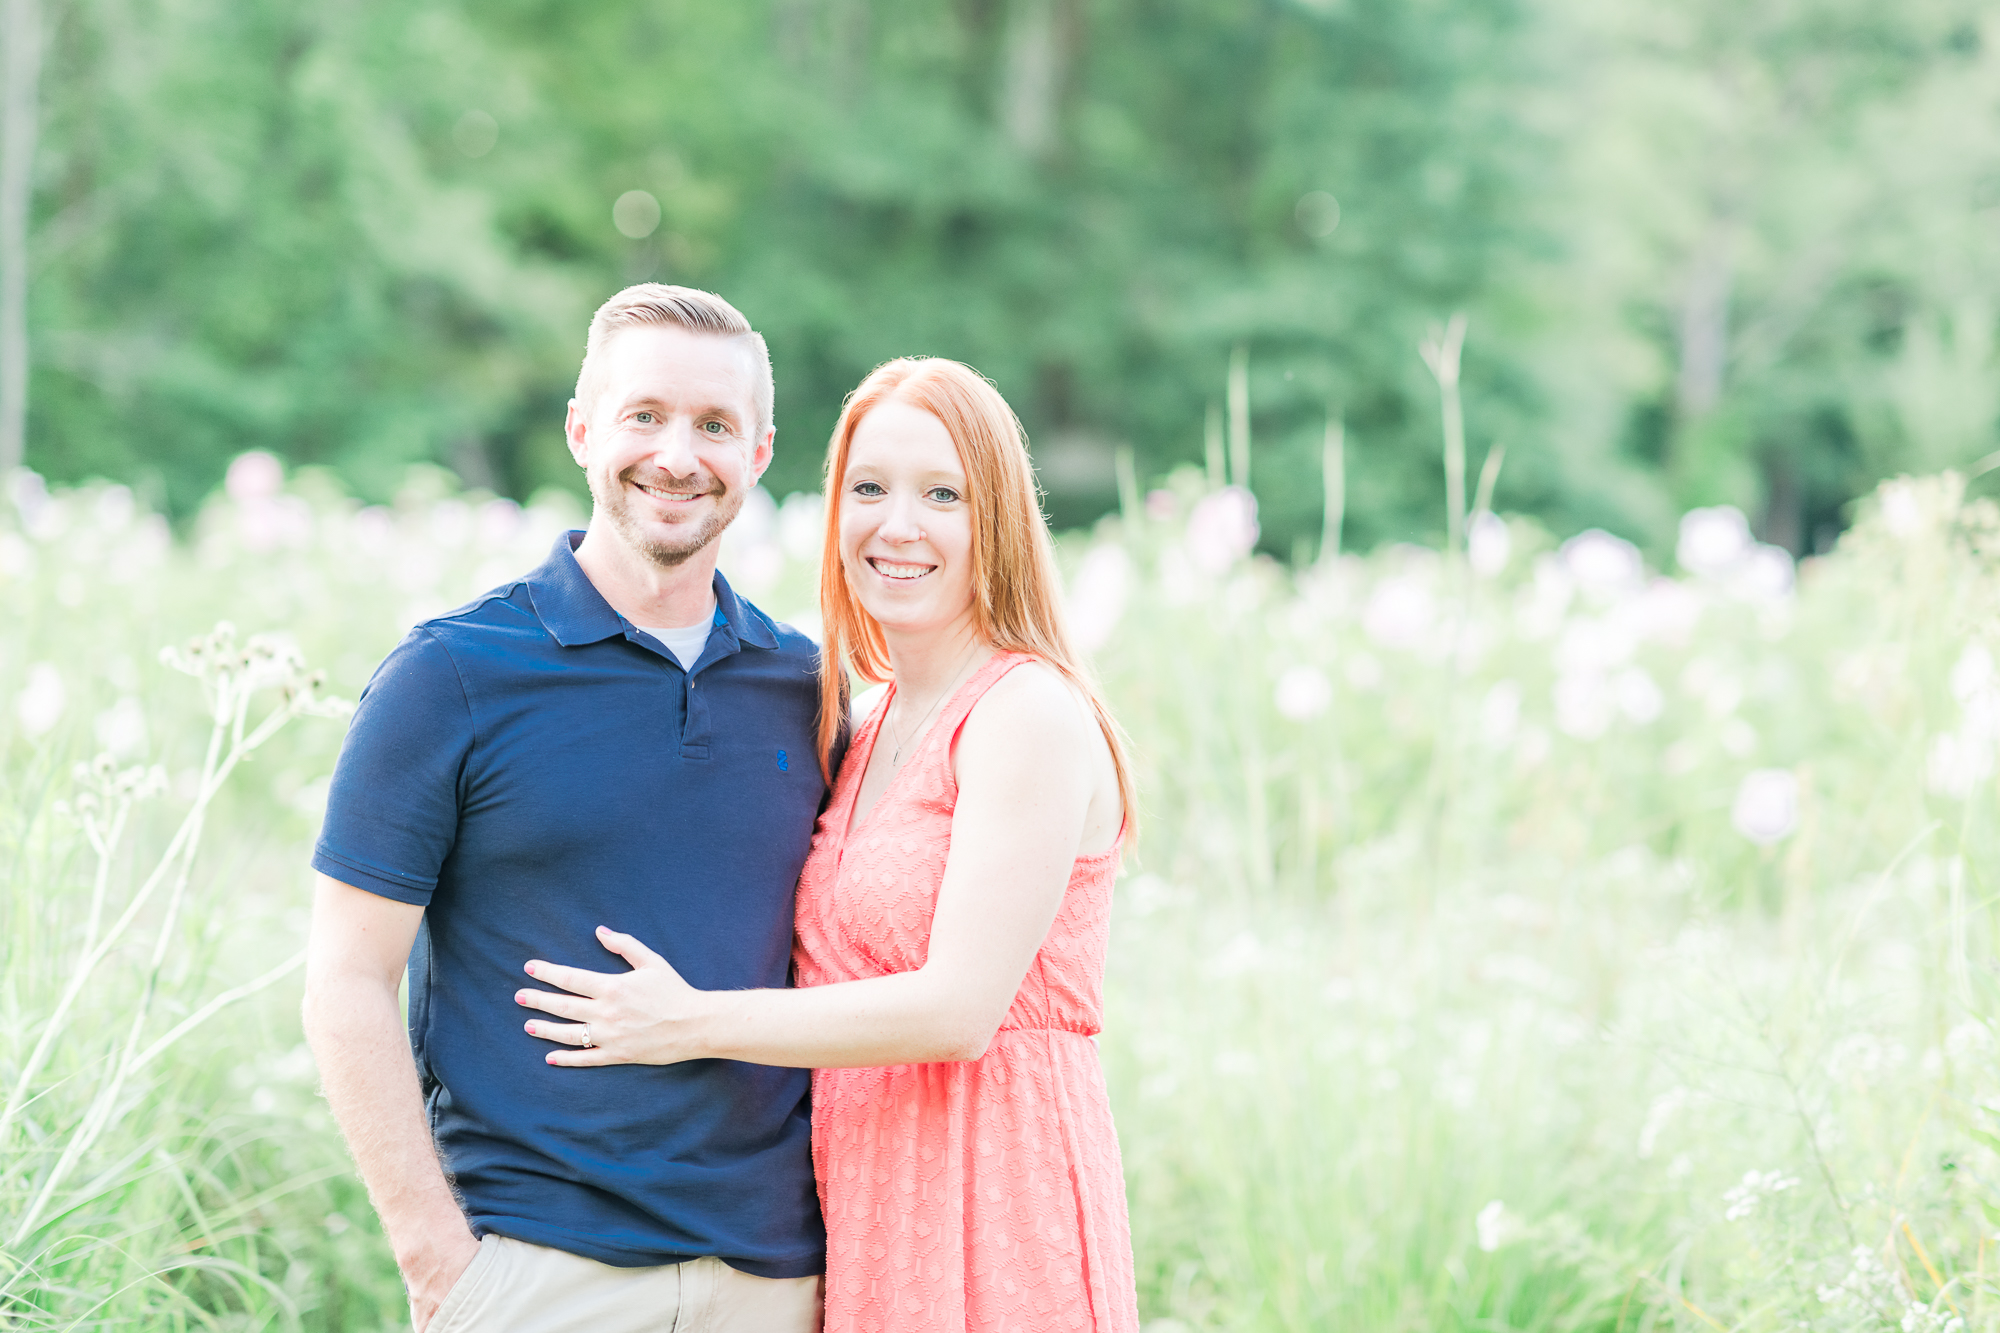 AB Favorites_Katy+Brian_Engagement Session_Brecksville Reservation_Brecksville_Ohio-25.jpg